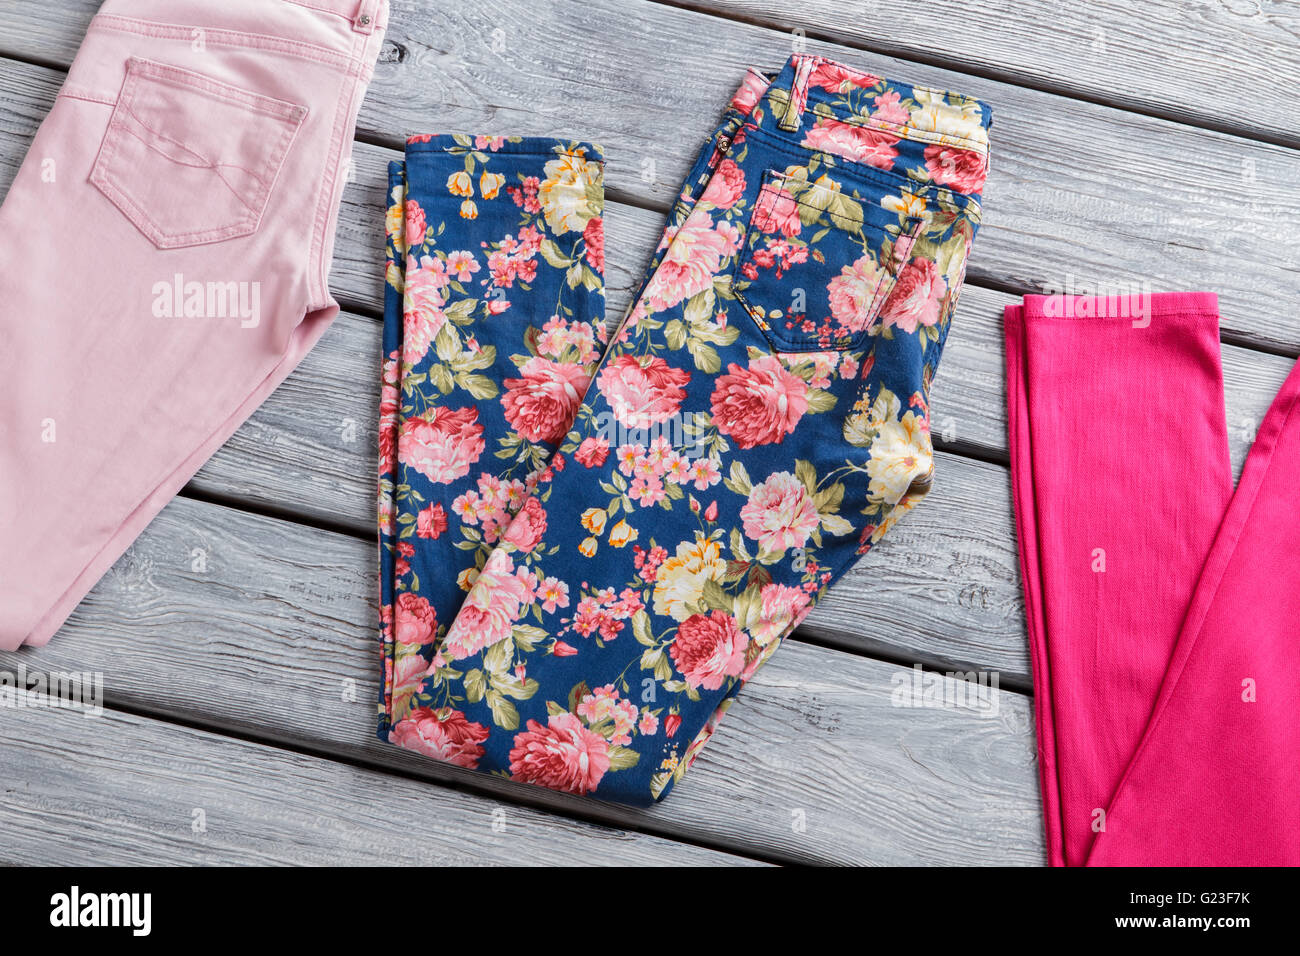 8da547d90a8f2b Floral Print Pants Stock Photos & Floral Print Pants Stock Images ...